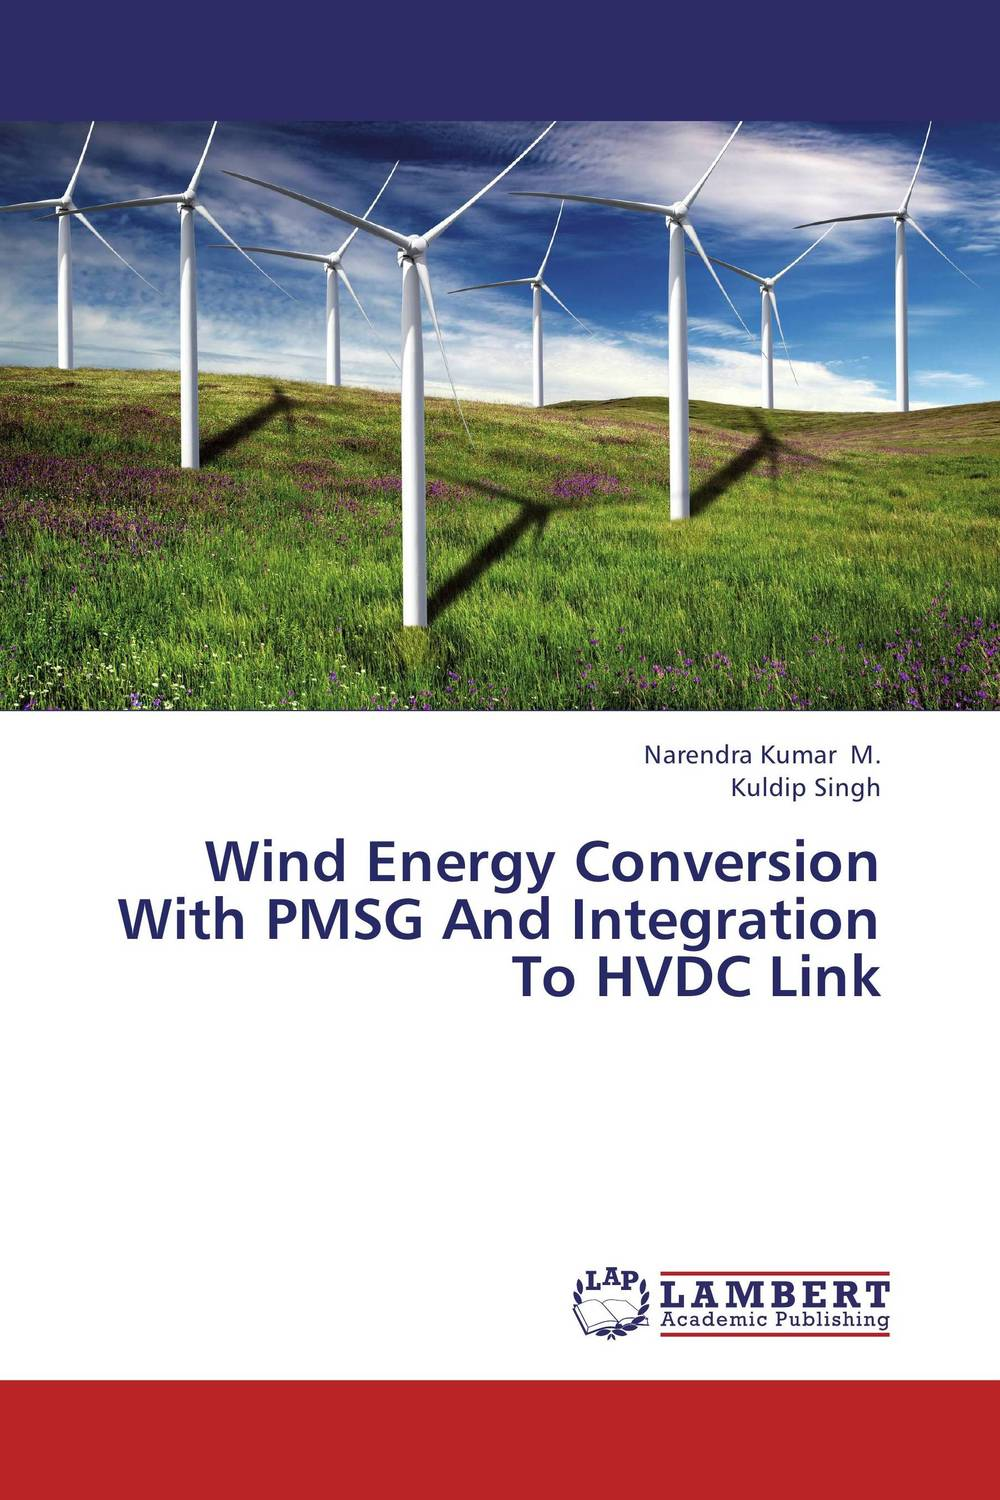 Wind Energy Conversion With PMSG And Integration To HVDC Link n 300s max power 310w vertical axis wind generator turbine 12v 24v small wind power generators